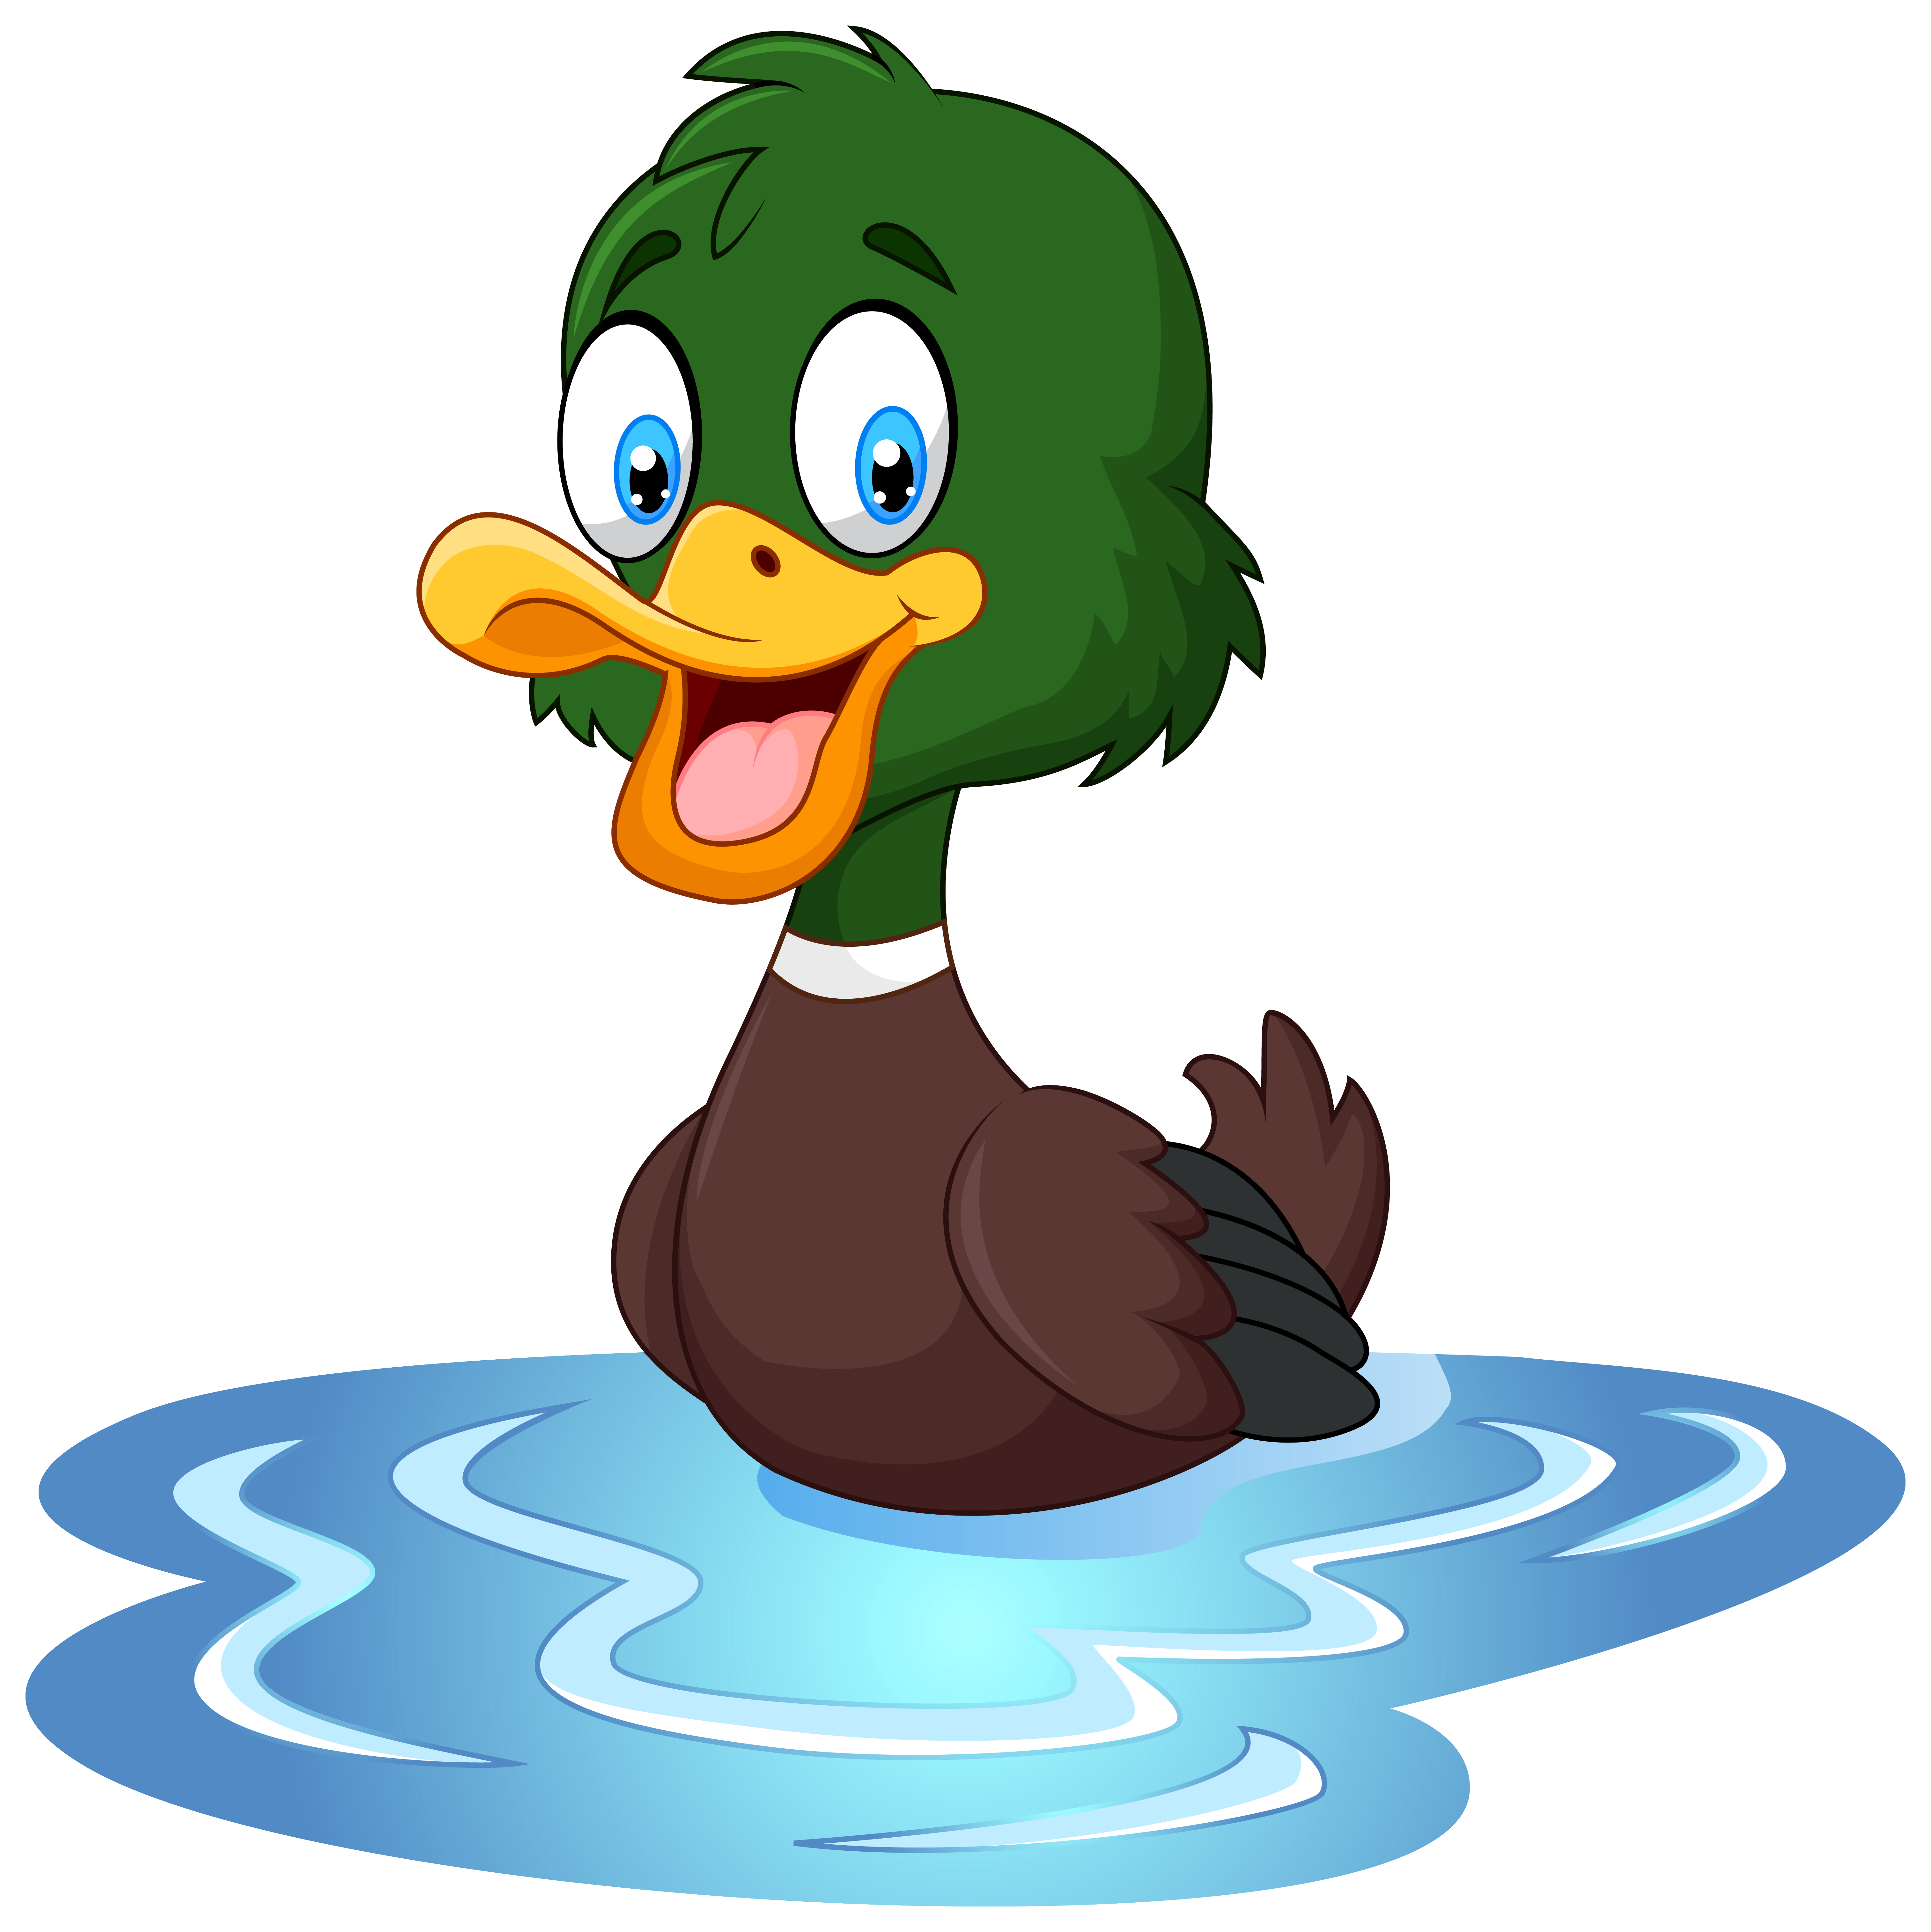 Duck clipart #1, Download drawings